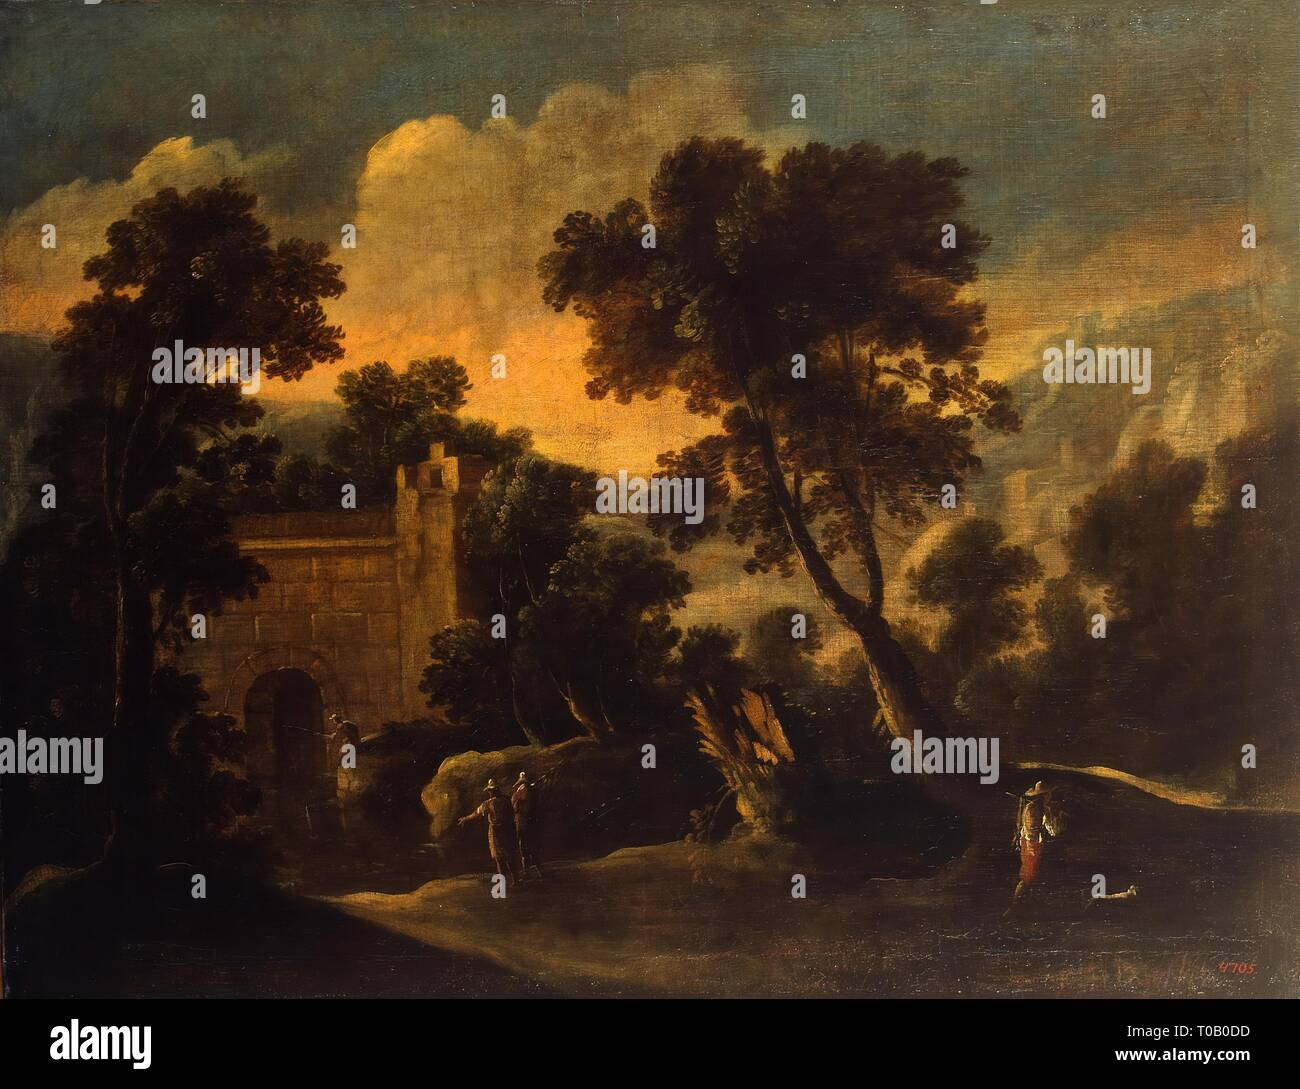 'Landscape with Ruins'. Spain, Circa 1634. Dimensions: 87,5x111,5 cm. Museum: State Hermitage, St. Petersburg. Author: Francisco Collantes (? ). Francisco Collantes. - Stock Image